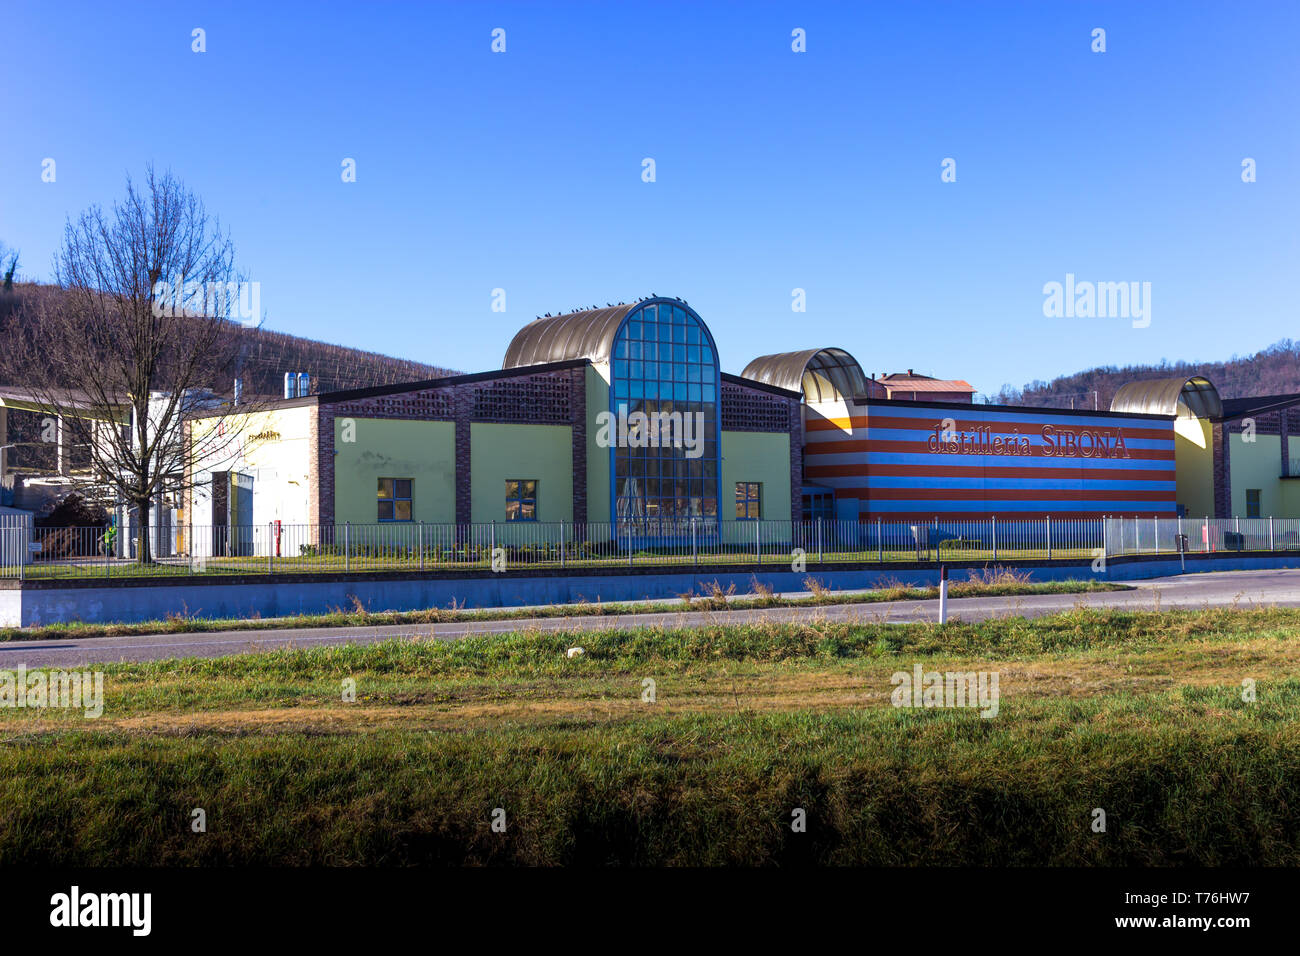 Piobesi d'Alba, Cuneo / Italy 03-11-2019: Overview of the Sibona Grappa Distillation plant in Italy - Stock Image